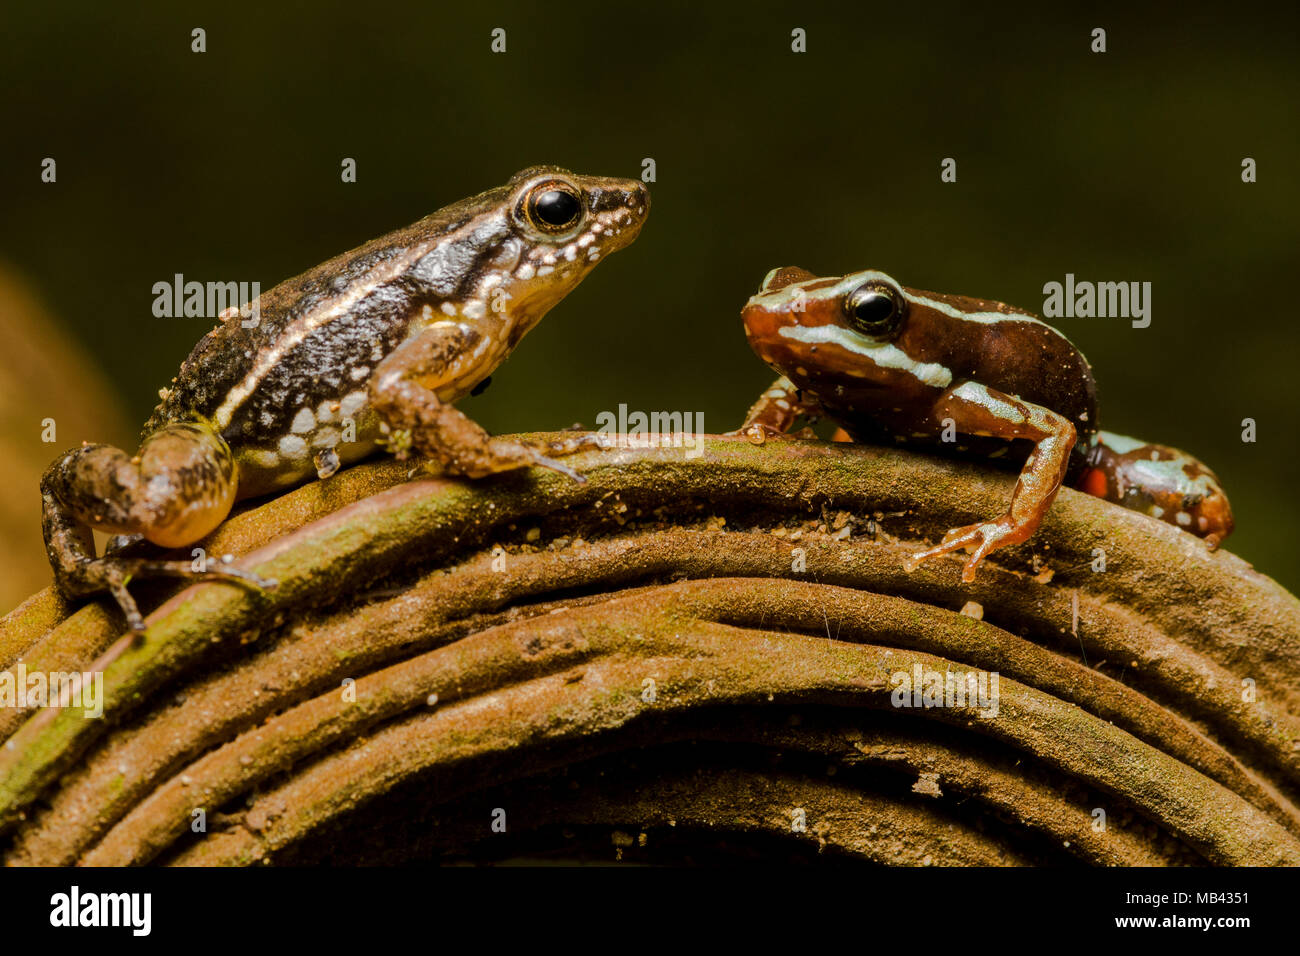 2 related poison frogs next to each other for comparison.  Anthony's poison frog (Epipedobates anthonyi) & a rocket frog (Hyloxalus infraguttatus). - Stock Image